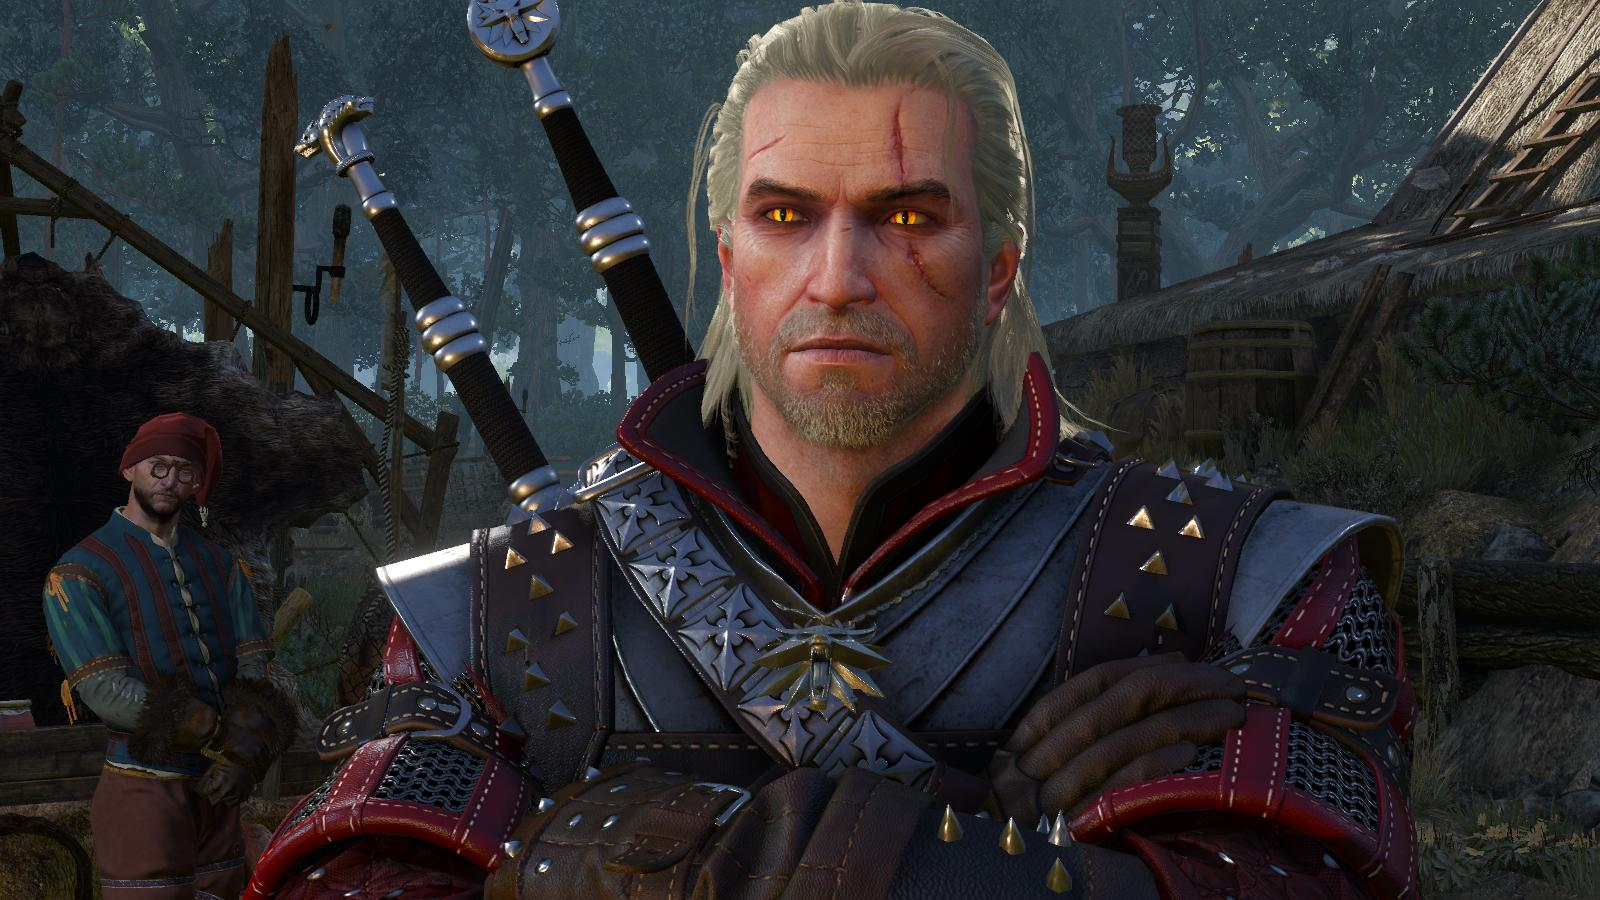 witcher3 2018-07-14 14-27-36-60.jpg - Witcher 3: Wild Hunt, the